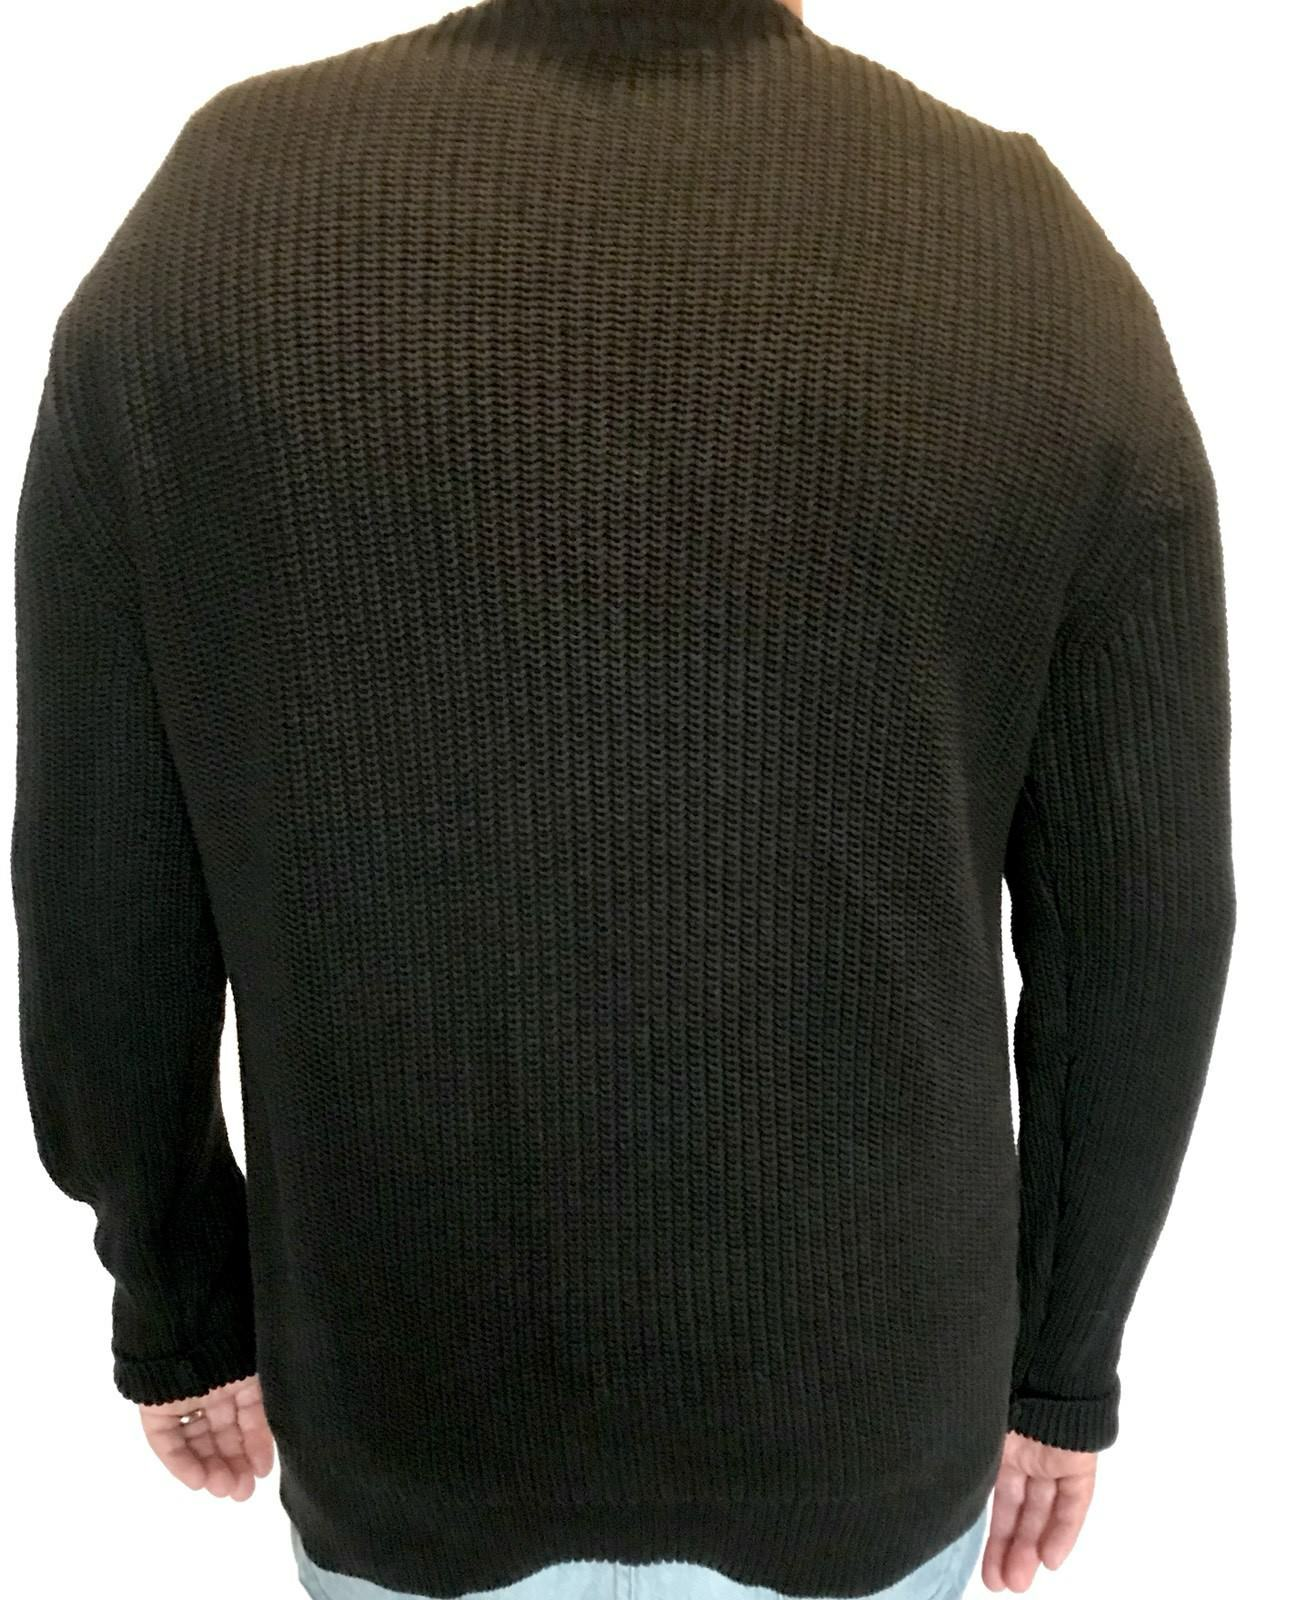 AllSaints Black Marsk Crew Sweater Retails $165 NWT Price $76 Size L